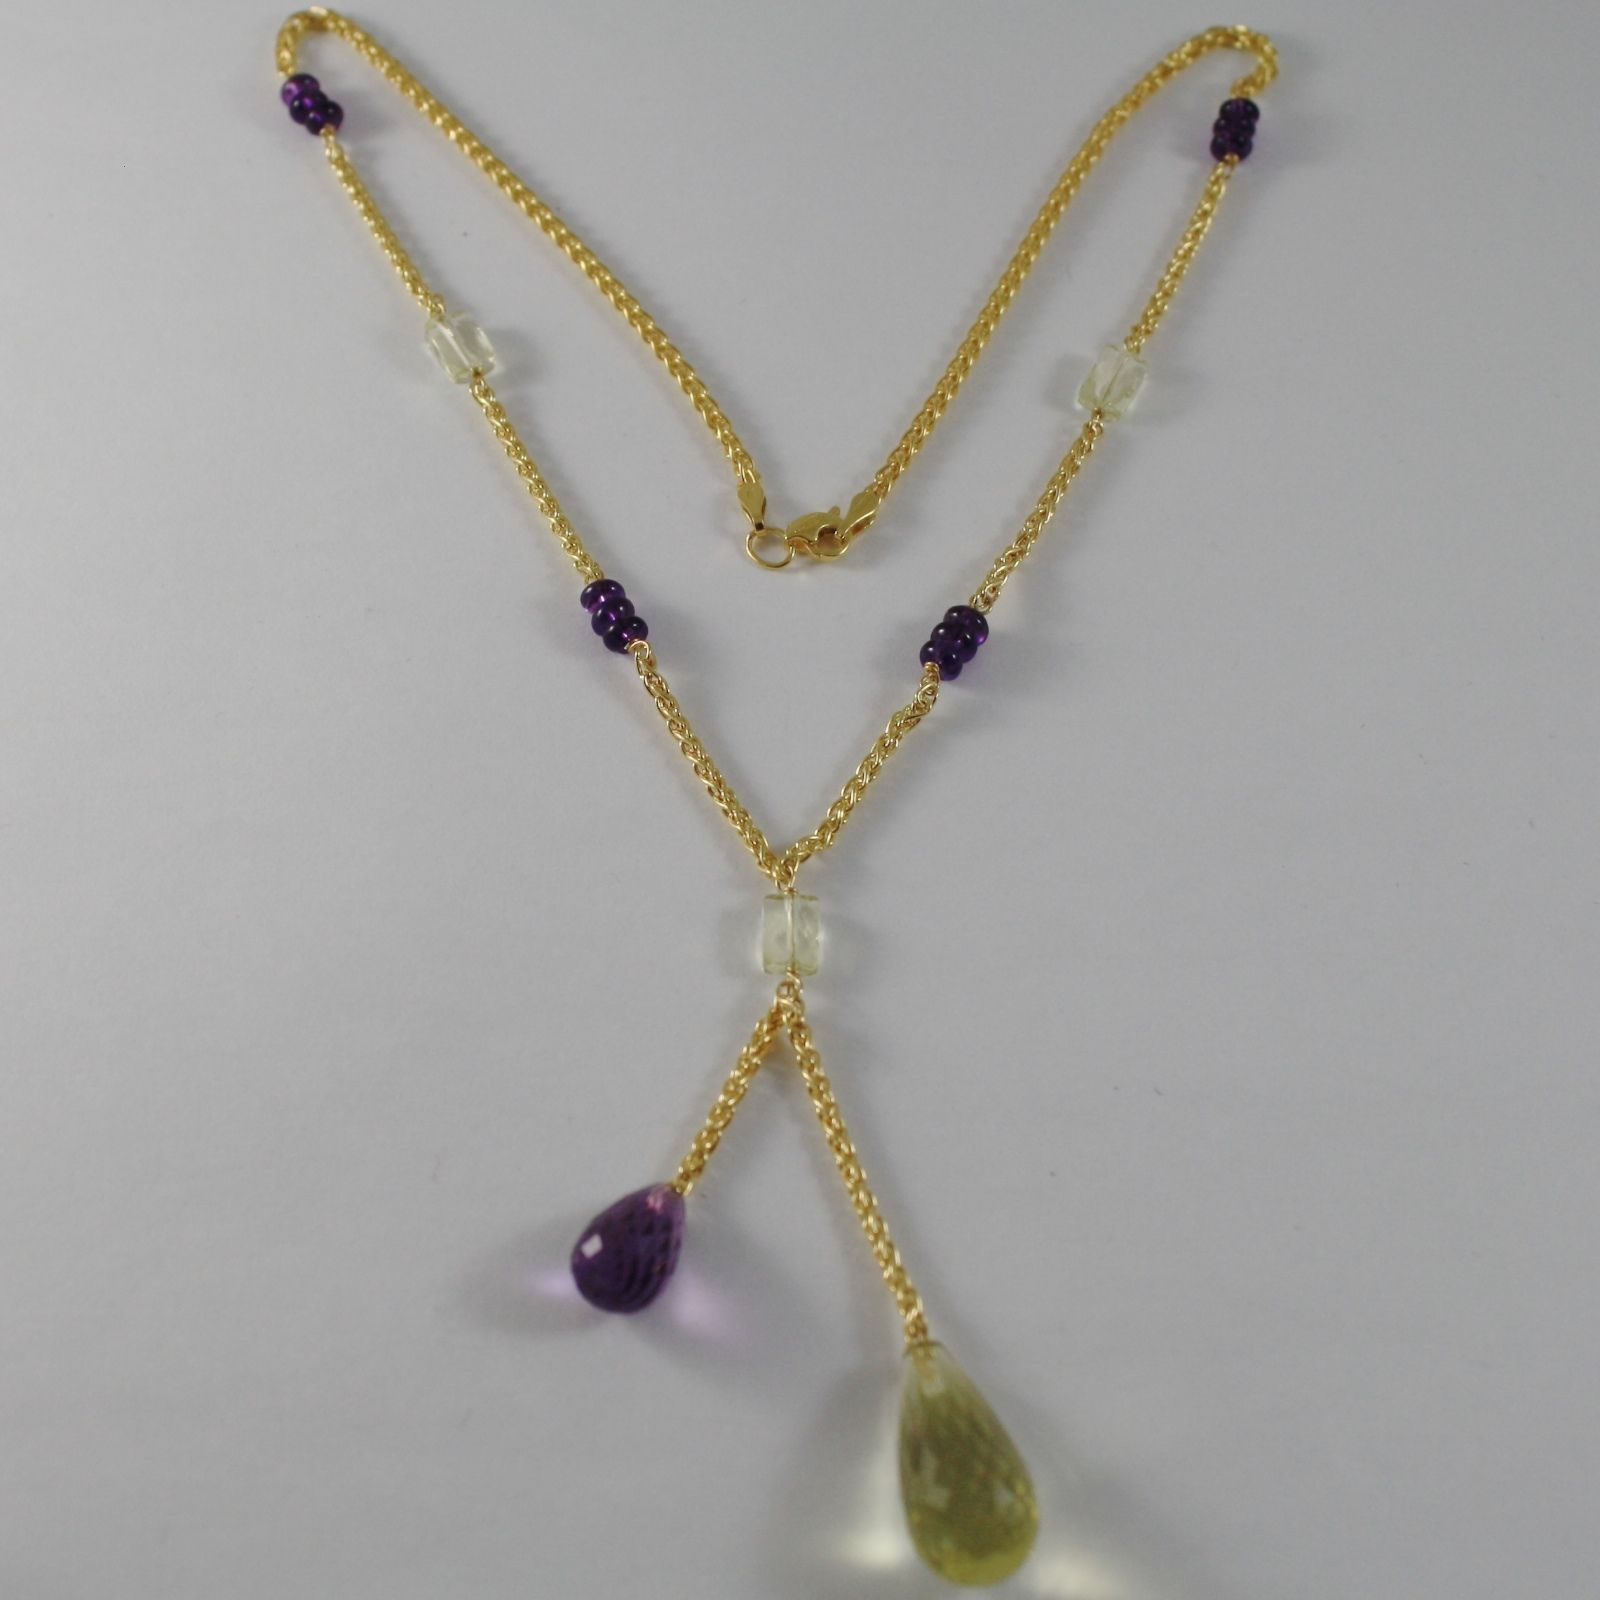 9K YELLOW GOLD NECKLACE WITH DROP CUSHION AMETHYST & LEMON QUARTZ MADE IN ITALY